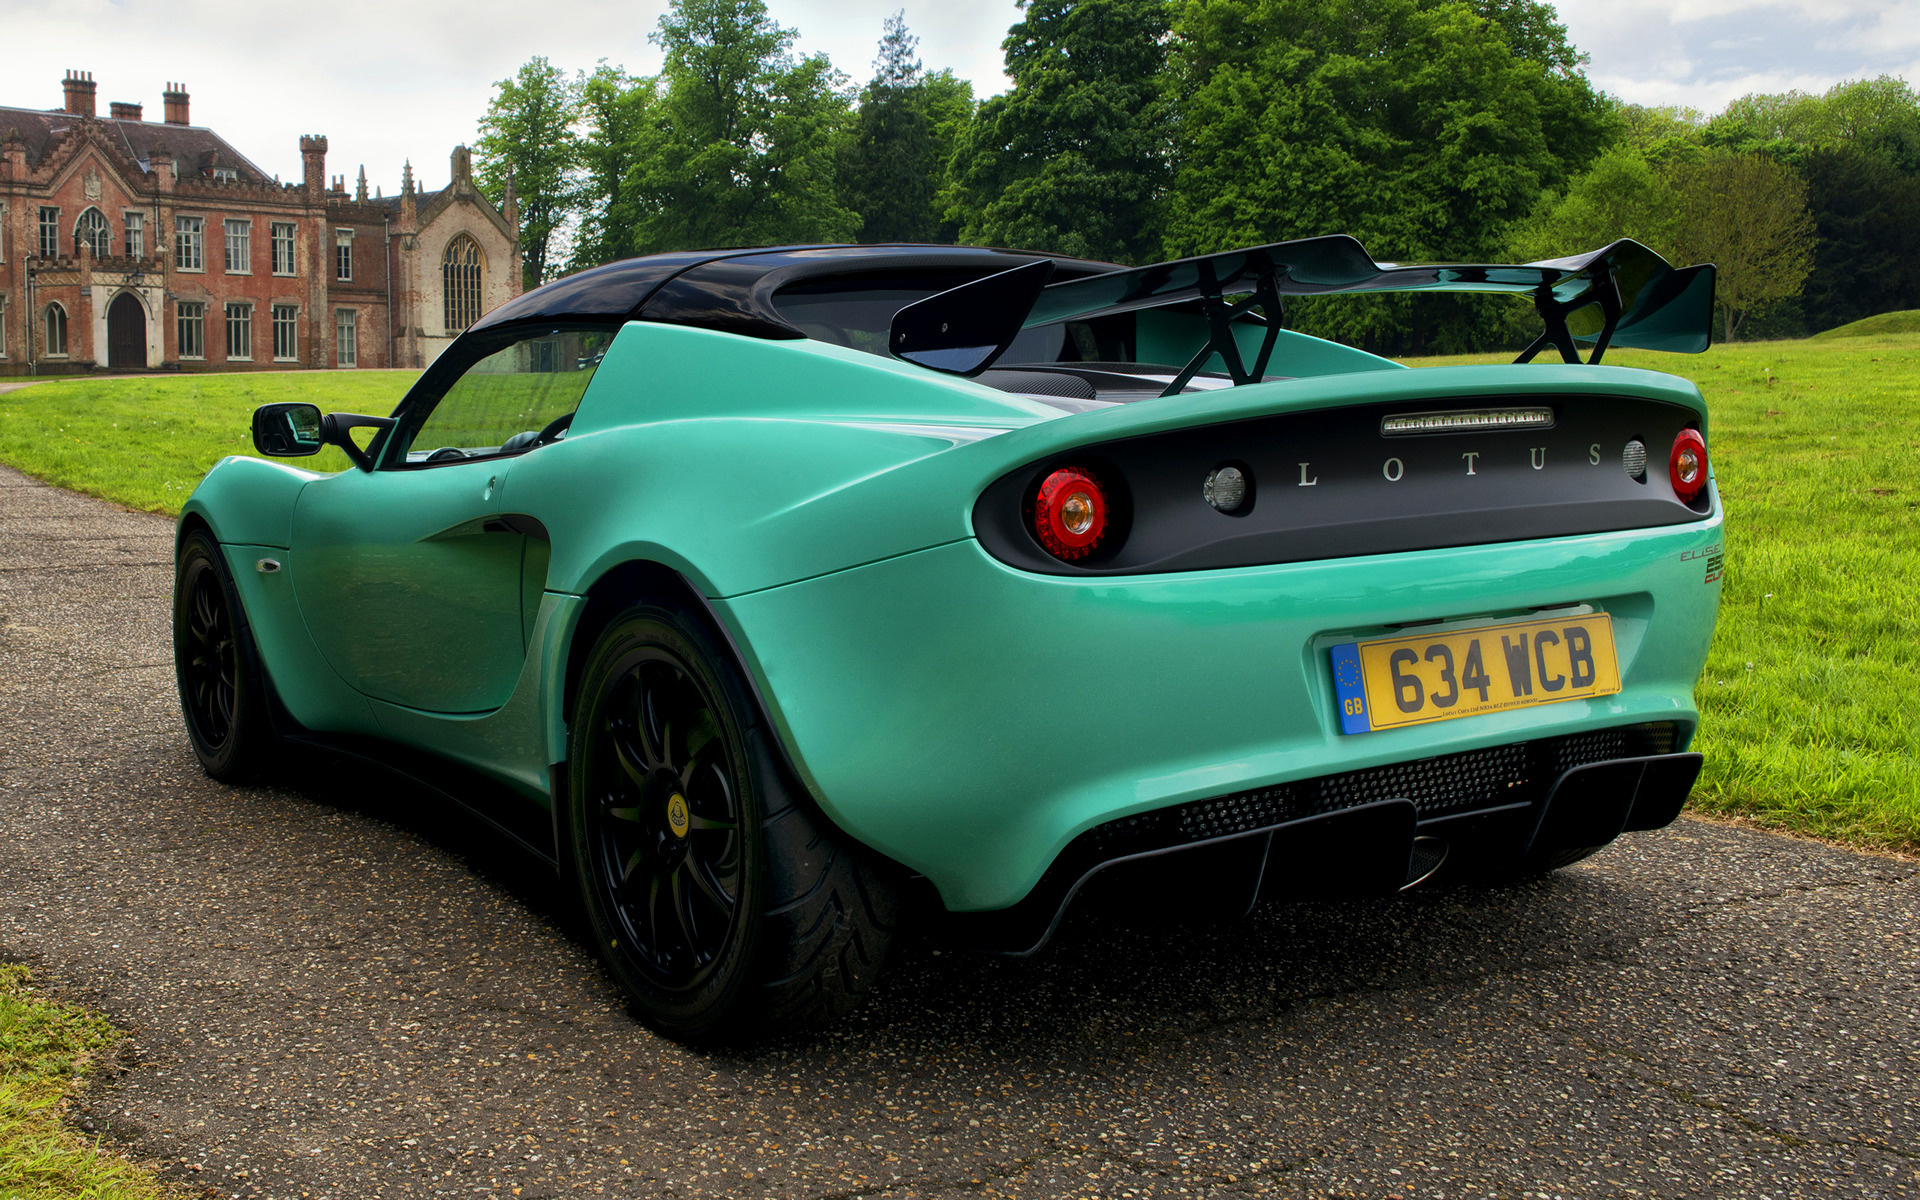 https://www.carpixel.net/w/e1eb05669d93d0826d0d14b89420b44d/lotus-elise-cup-250-car-wallpaper-66075.jpg